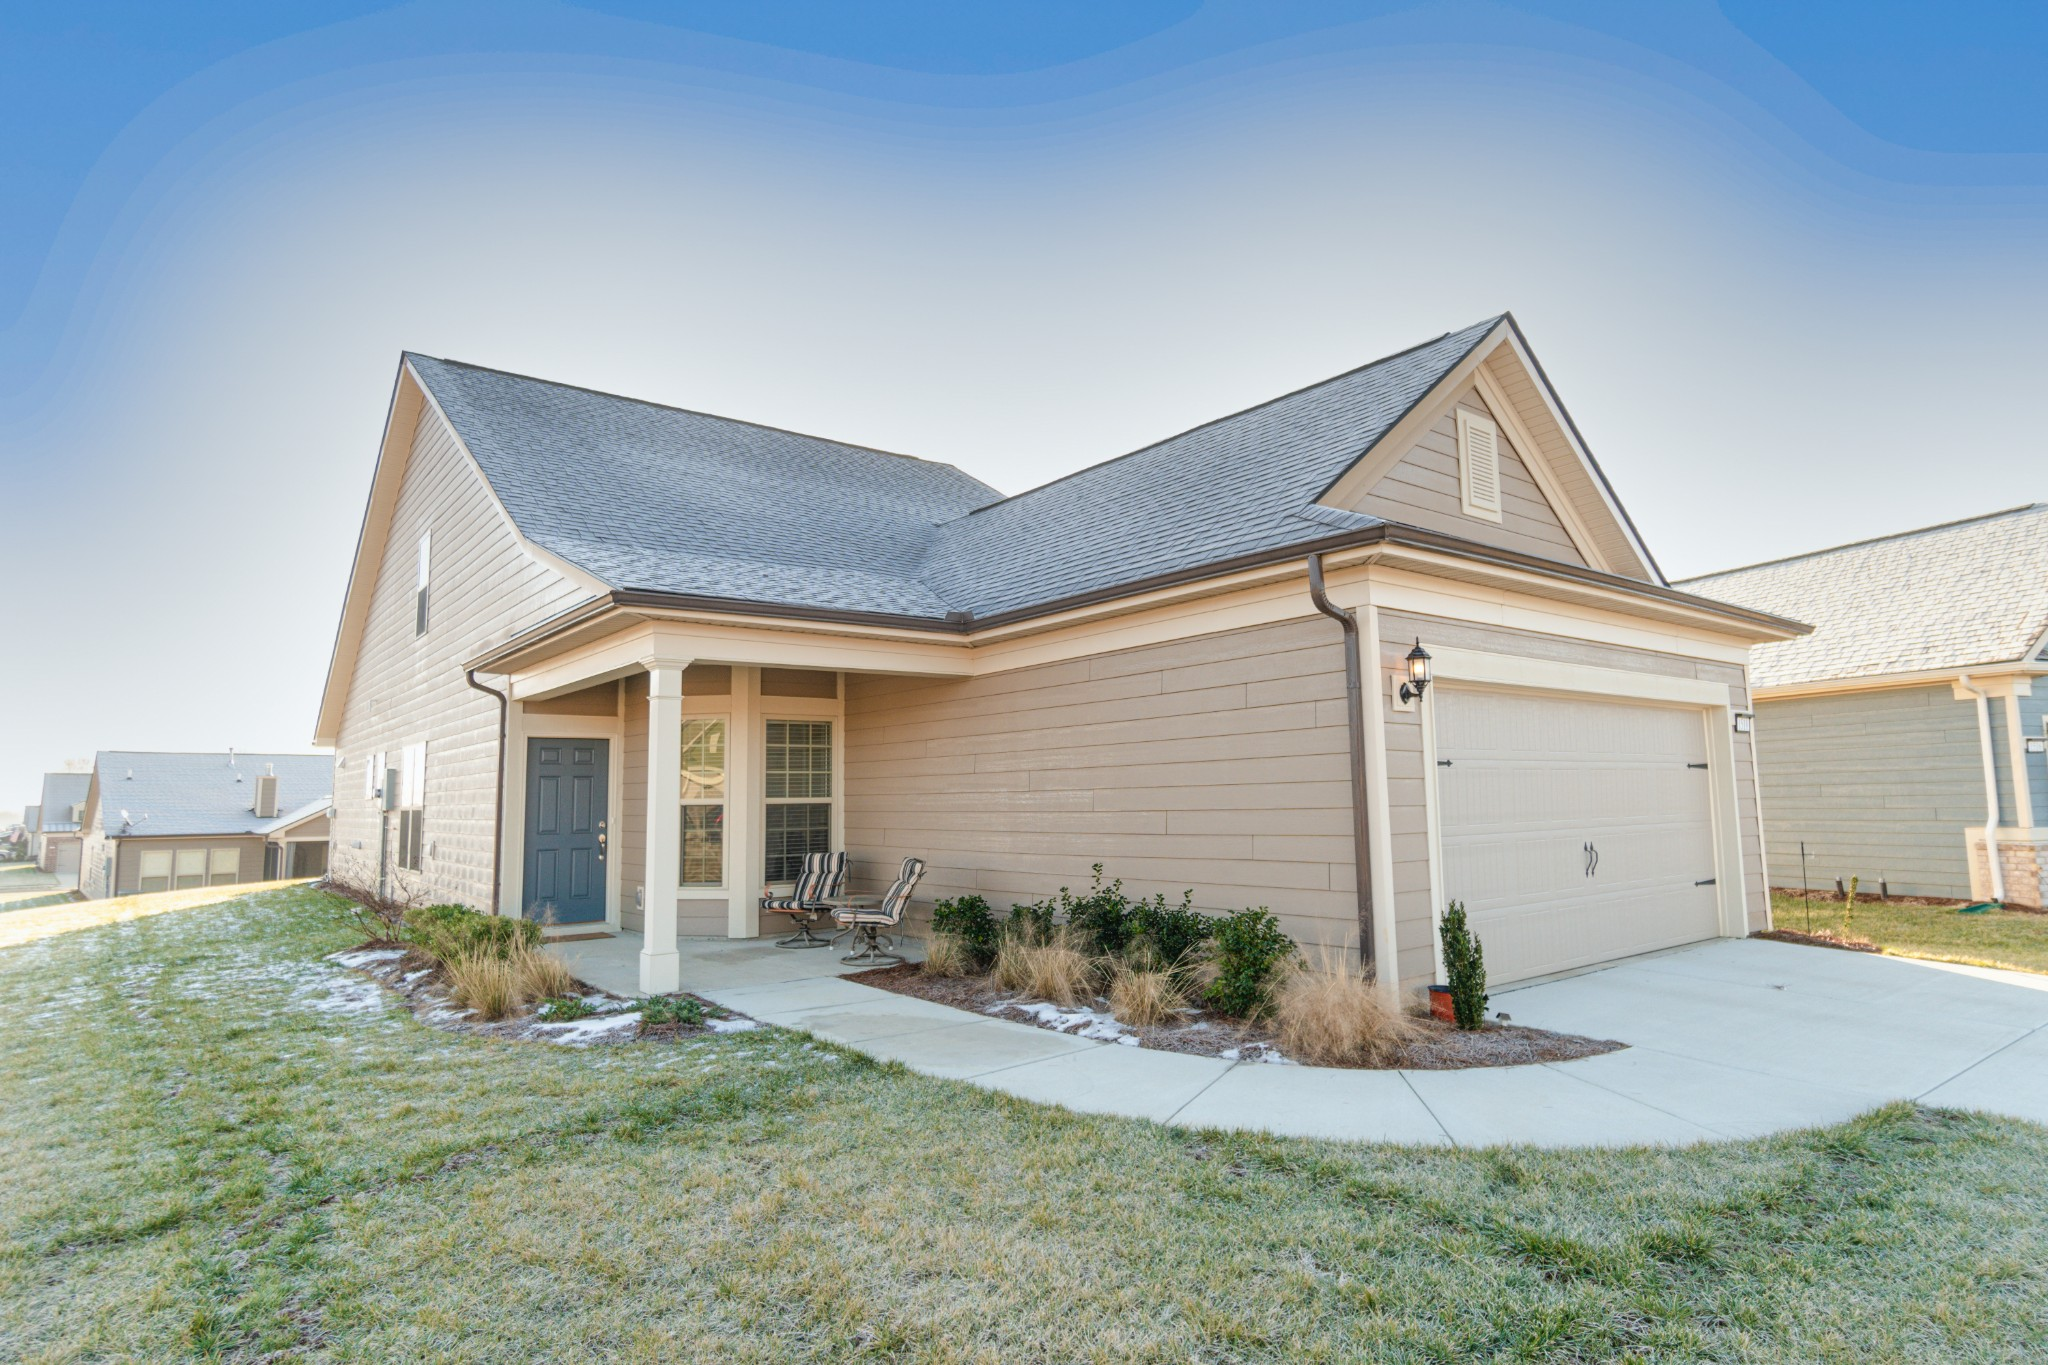 Welcome Home- Del Webb 55+ Active Adult Community Featuring Resort-Style Amenities Including Indoor/Outdoor Pool, Fitness Center, Yoga Room, Tennis and Pickle Ball Courts. HIGHLY DESIRABLE Taft Street Floor Plan w/Upstairs Bonus Room, 3rd Bedroom, and 3rd Full Bath.  Office/Flex Room, Gourmet Kitchen with Black Whirlpool Appliances, Granite Counter Tops in Kitchen and All Bathrooms.  Large Corner Lot w/Covered, Screened Patio, Front Porch & 2 Car garage. HOA Maintains Yard! NO MORE MOWING!!